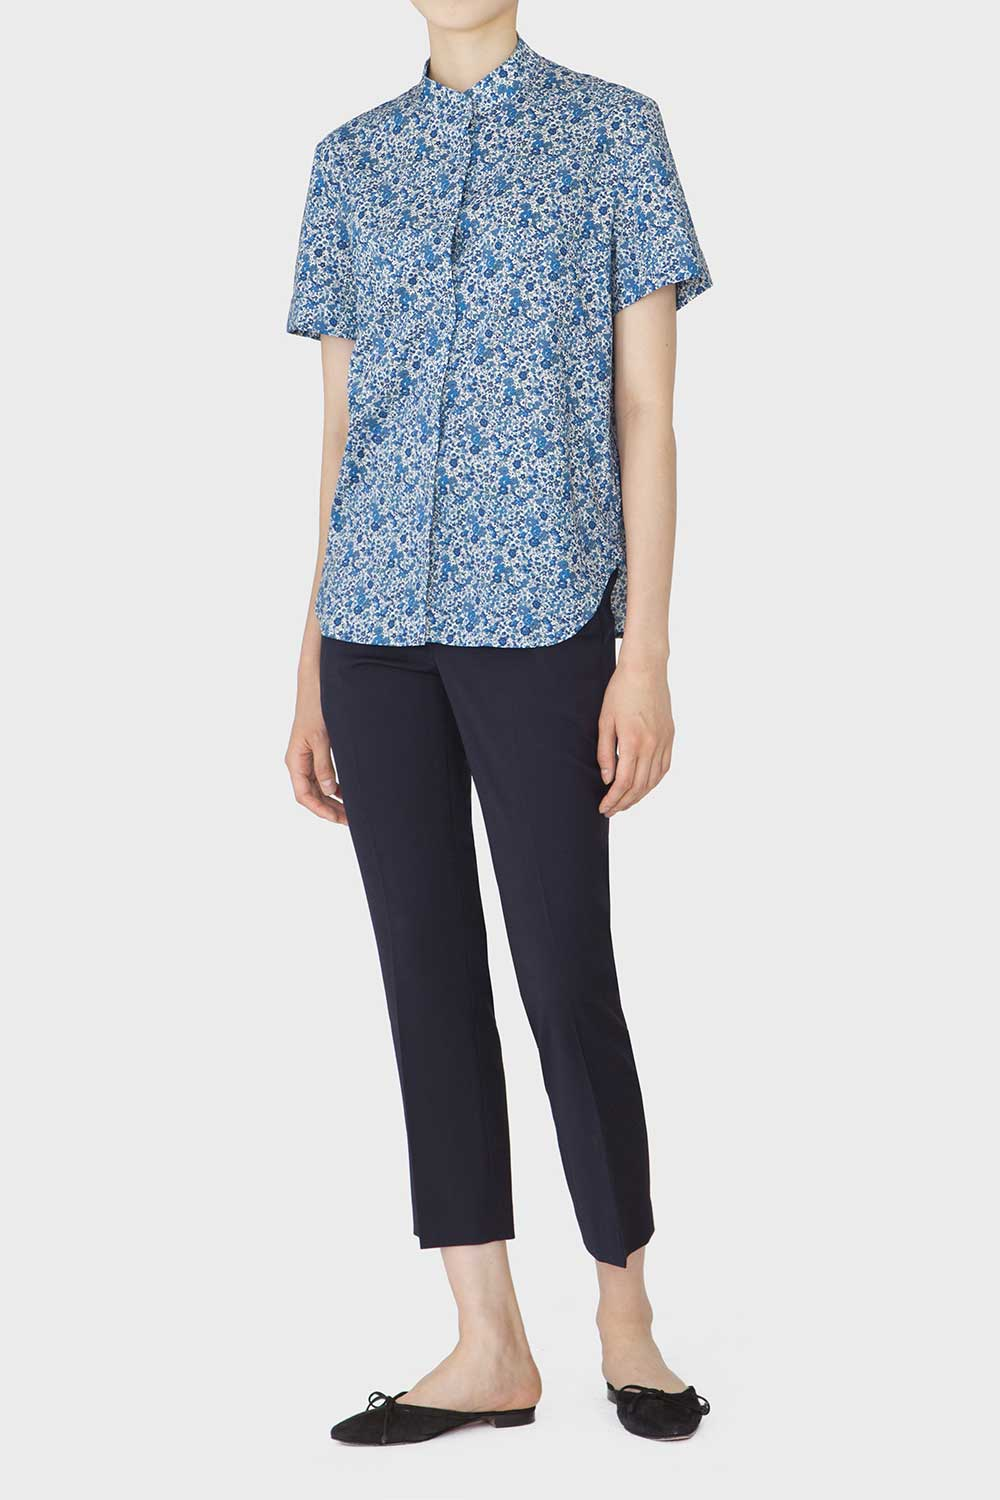 [COURRI x LIBERTY] KIS SHORTSLEEVE SHIRT